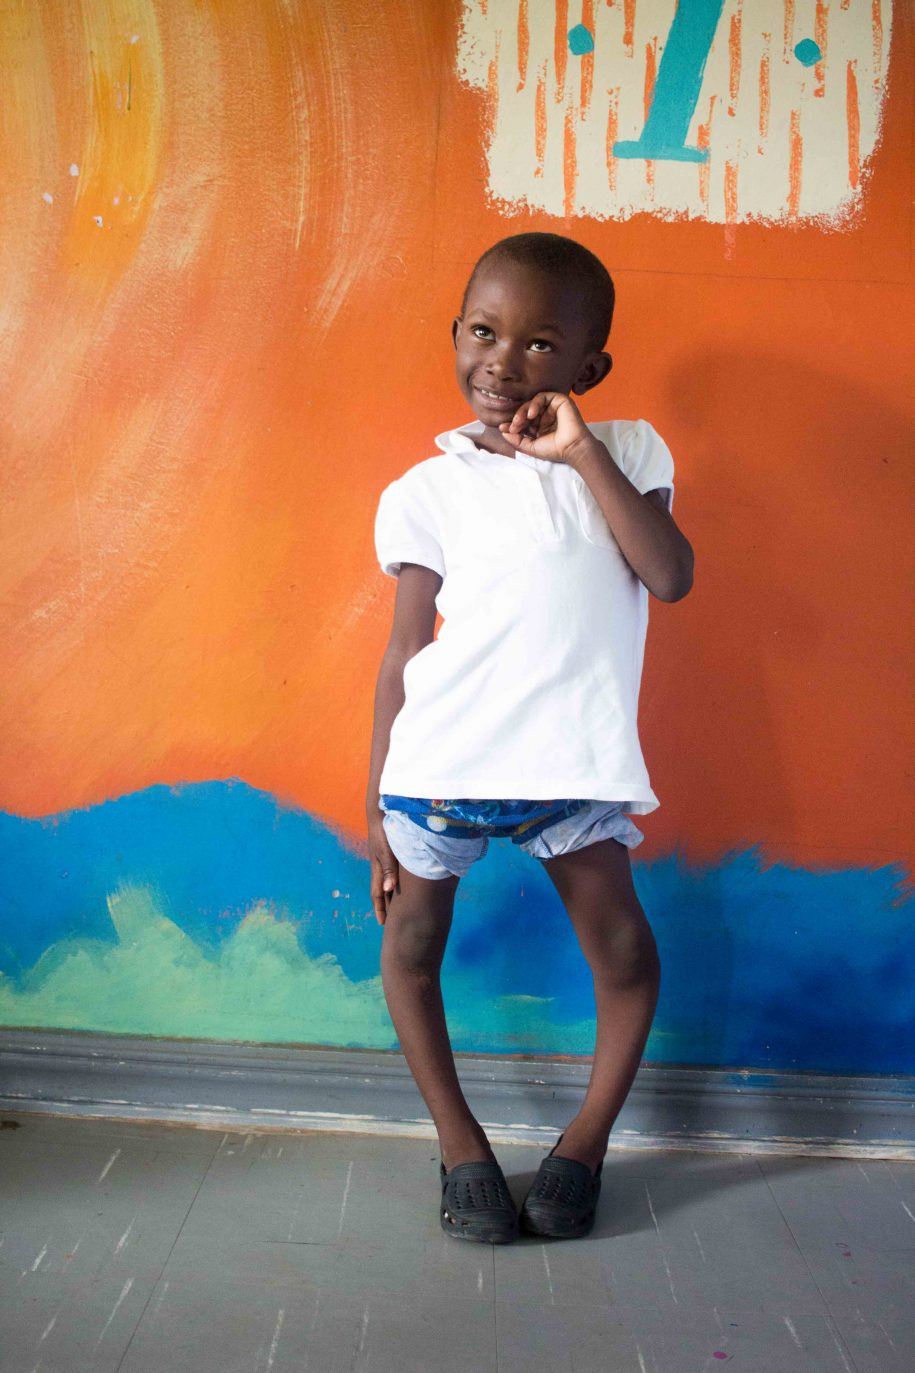 A photo of Justine from Zambia. Learn more at https://cure.org/curekids/zambia/2016/06/justine/